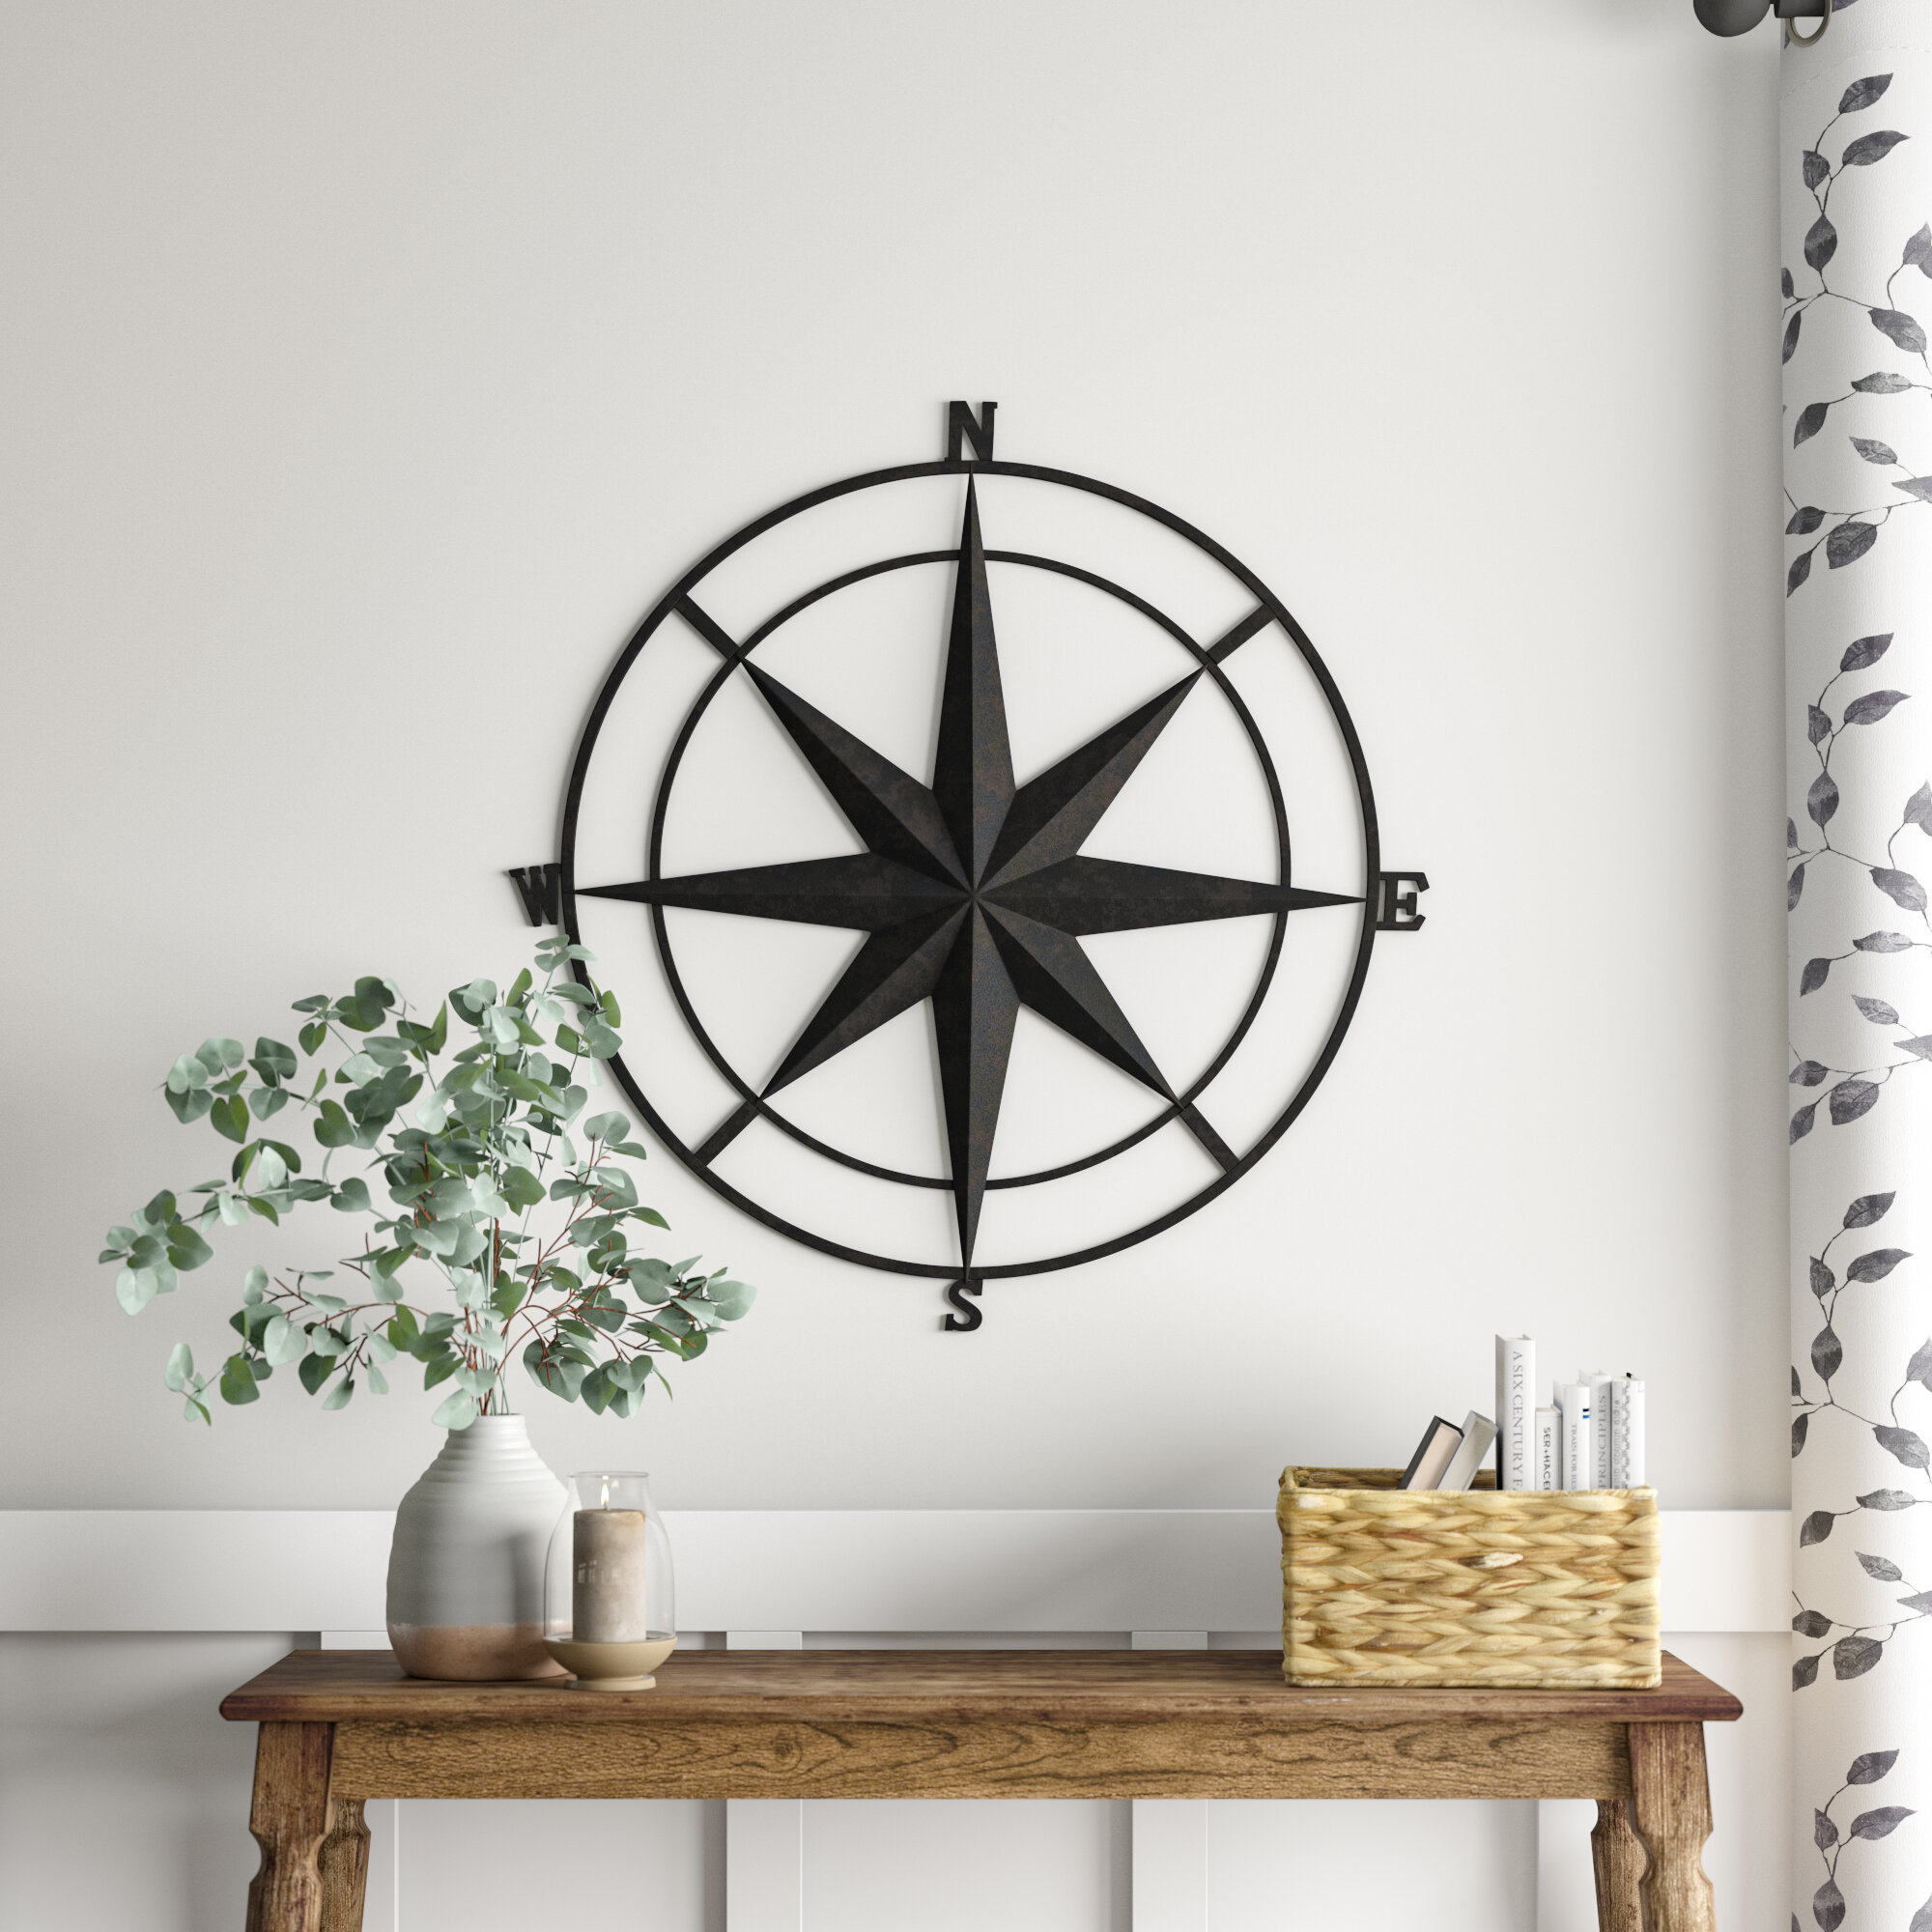 Gold Metal Wall Art You'll Love In 2019 | Wayfair.ca regarding Outdoor Metal Wall Compass (Image 20 of 30)